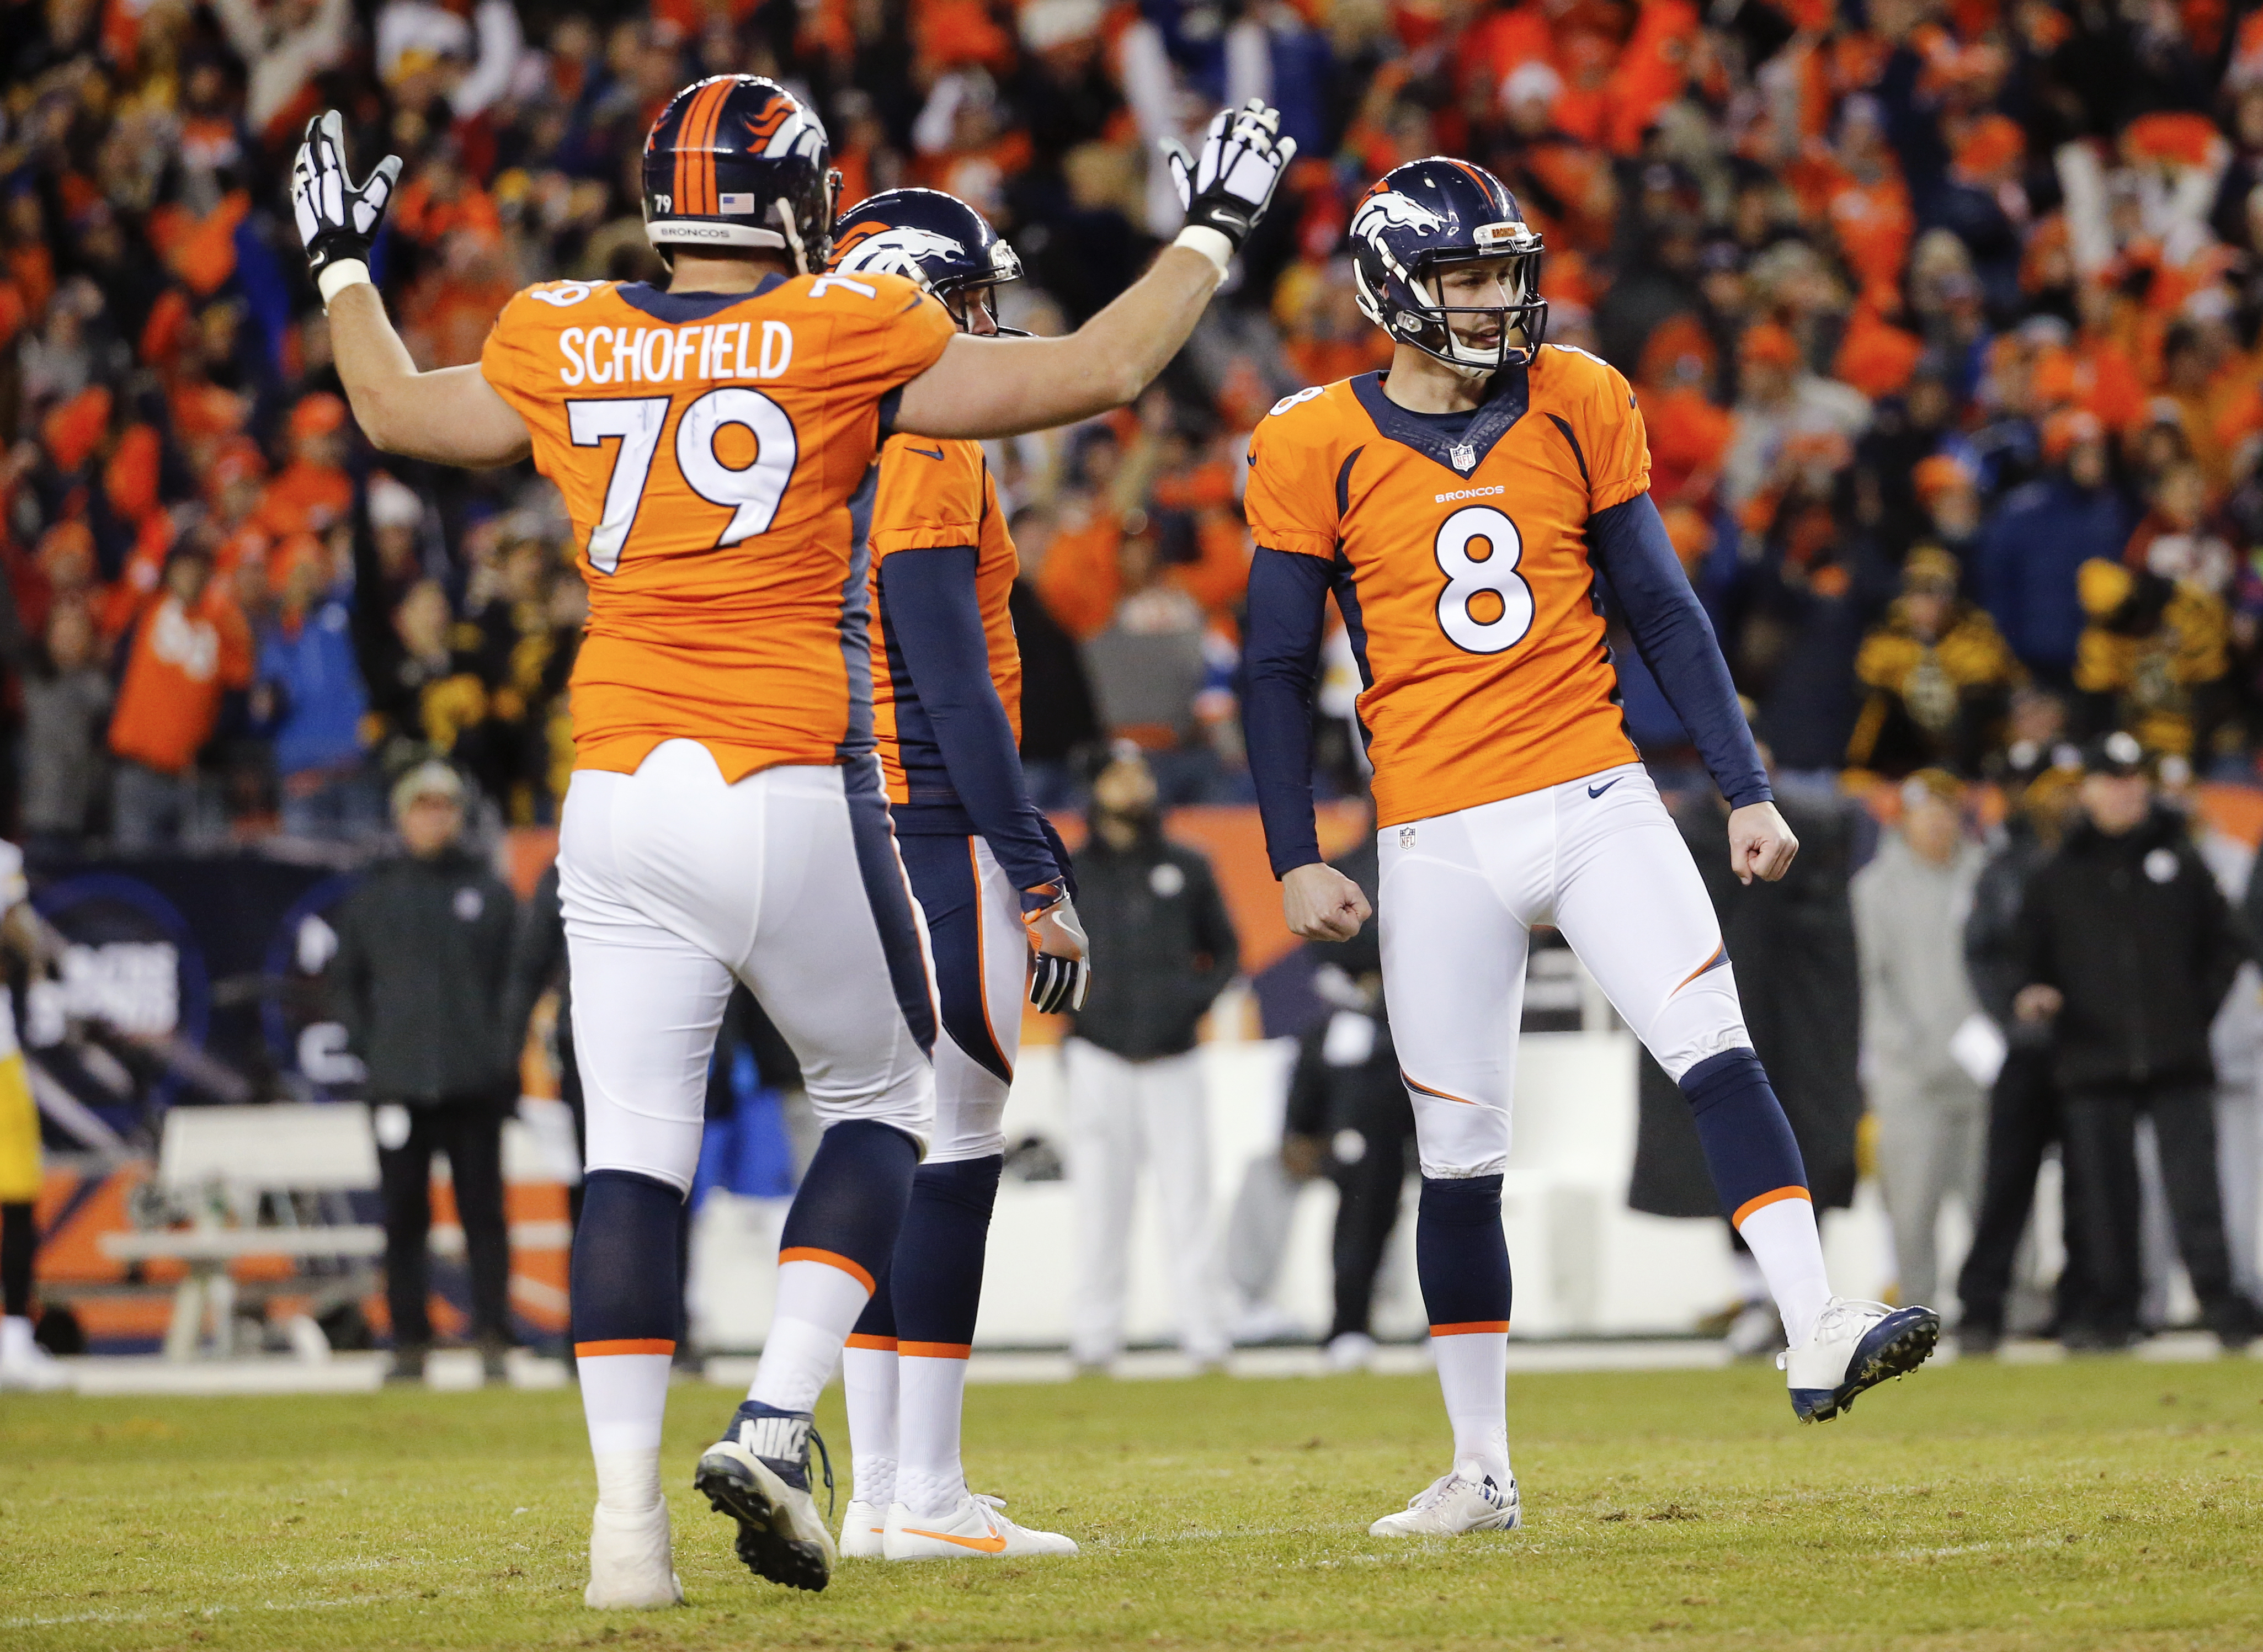 Denver Broncos kicker Brandon McManus, right, celebrates after kicking a field goal with tackle Michael Schofield, left, and Britton Colquitt, center, during the second half in an NFL football divisional playoff game, Sunday, Jan. 17, 2016, in Denver. (AP